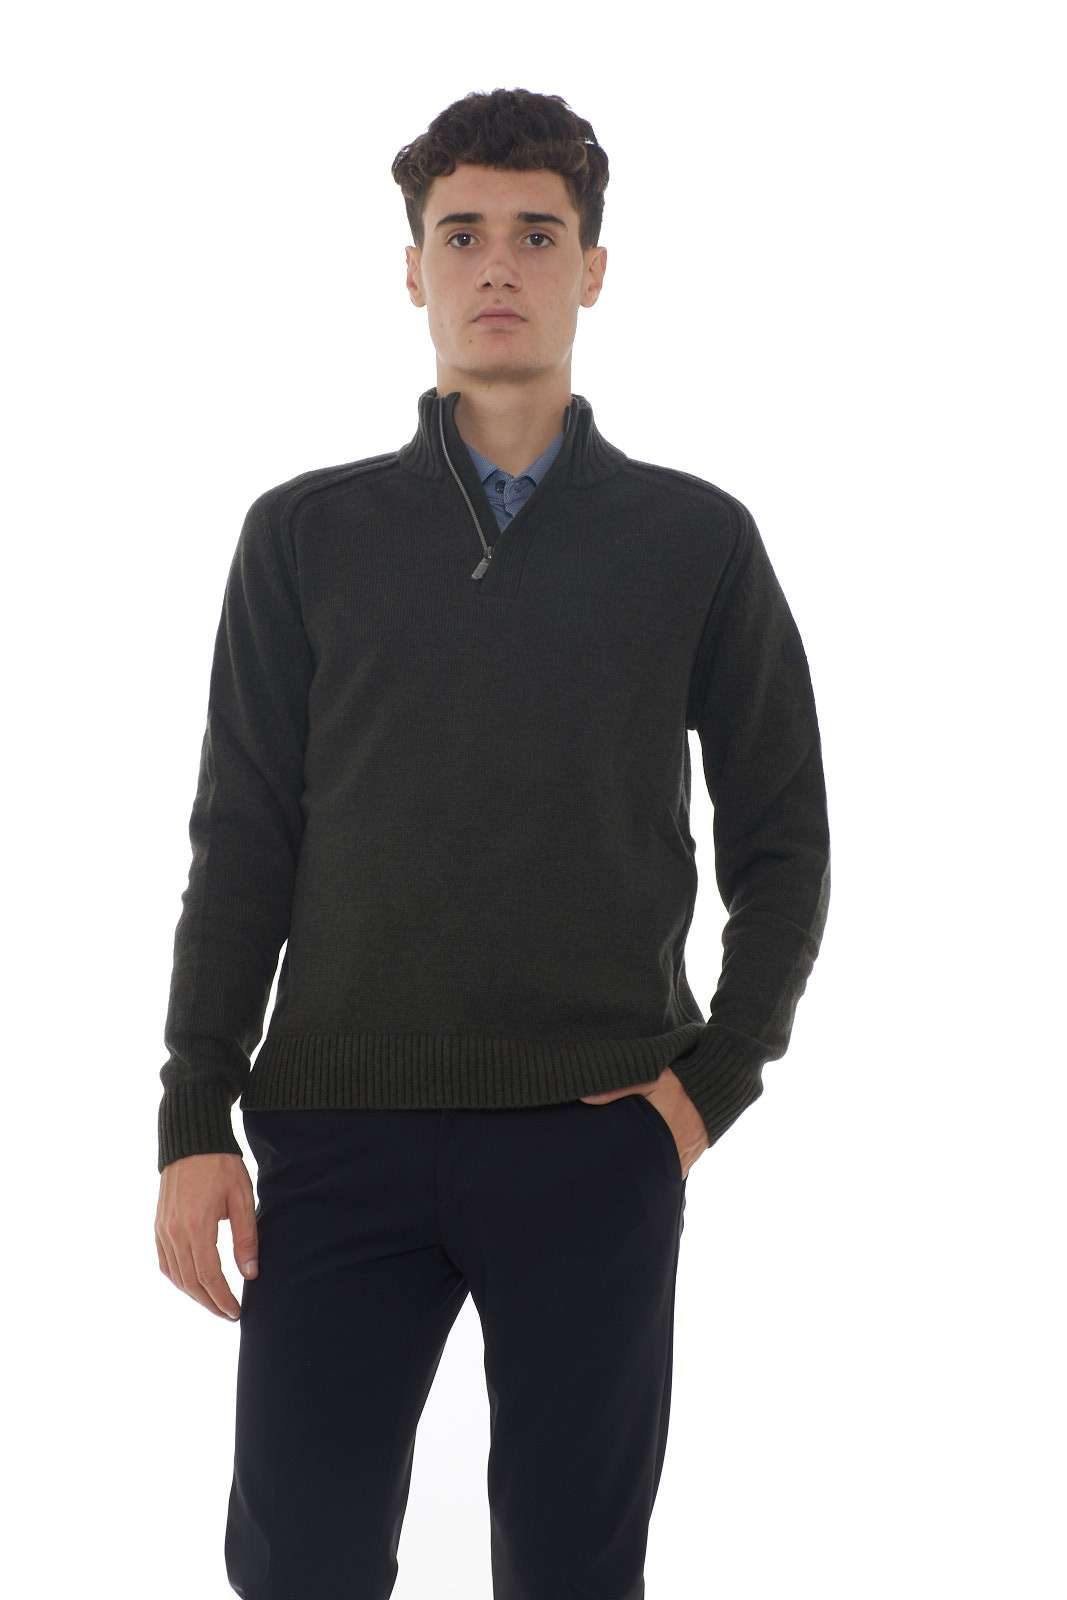 https://www.parmax.com/media/catalog/product/a/i/AI-outlet_parmax-maglia-uomo-RRD-W19131-A.jpg